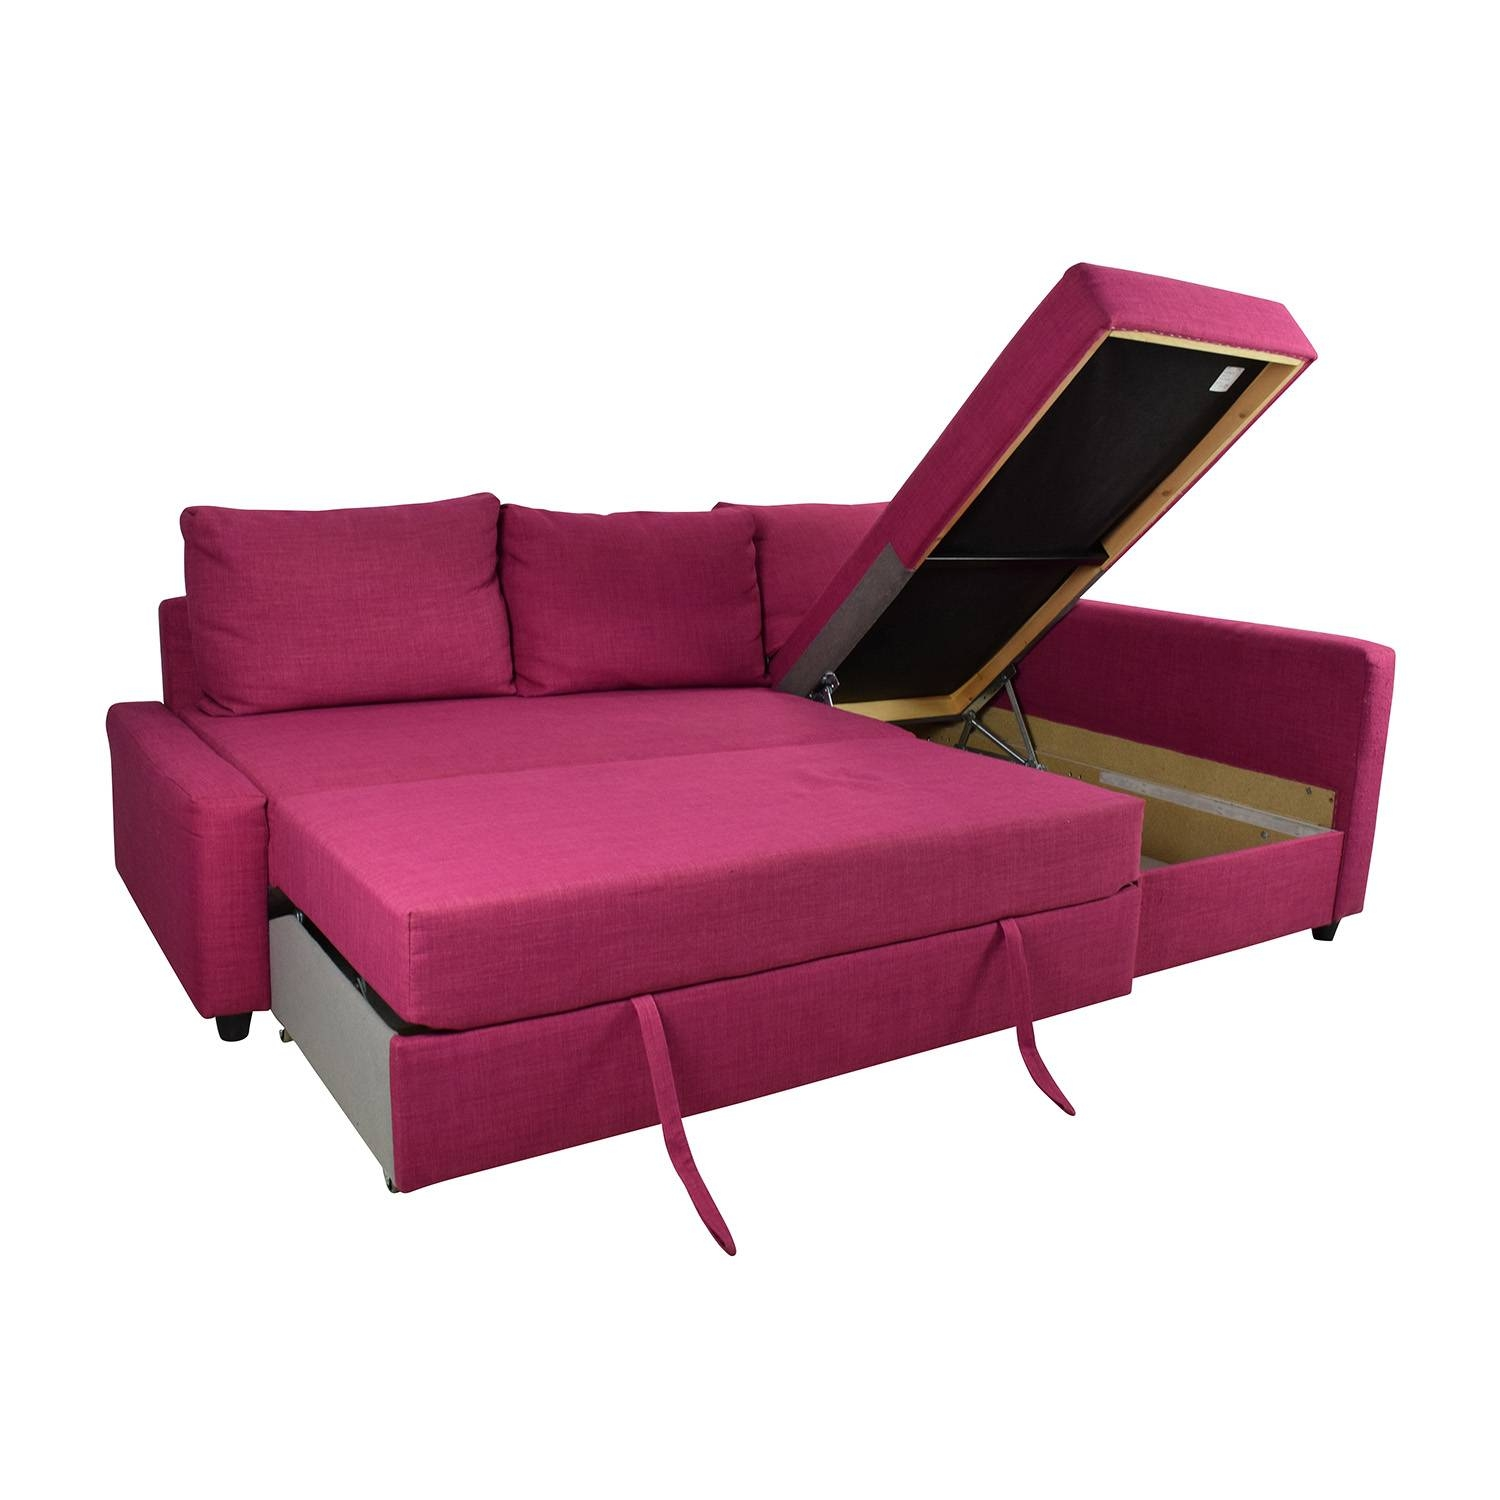 66% Off - Ikea Ikea Friheten Pink Sleeper Sofa / Sofas within Sleeper Sofas Ikea (Image 1 of 25)